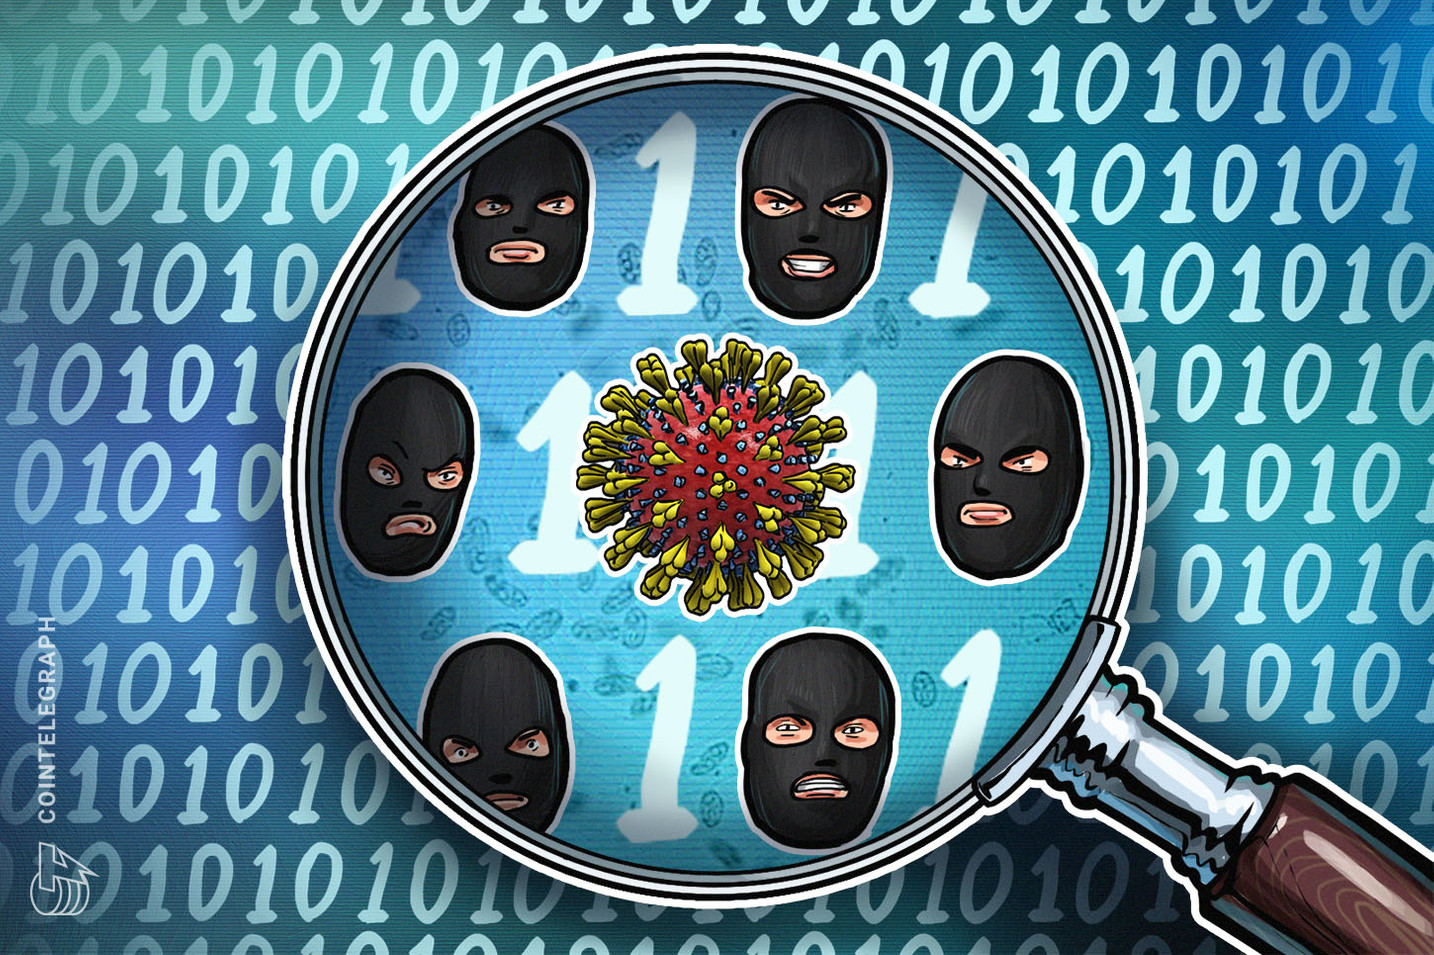 Expert Warns: Don't Trust Ransomware Groups Amid Pandemic